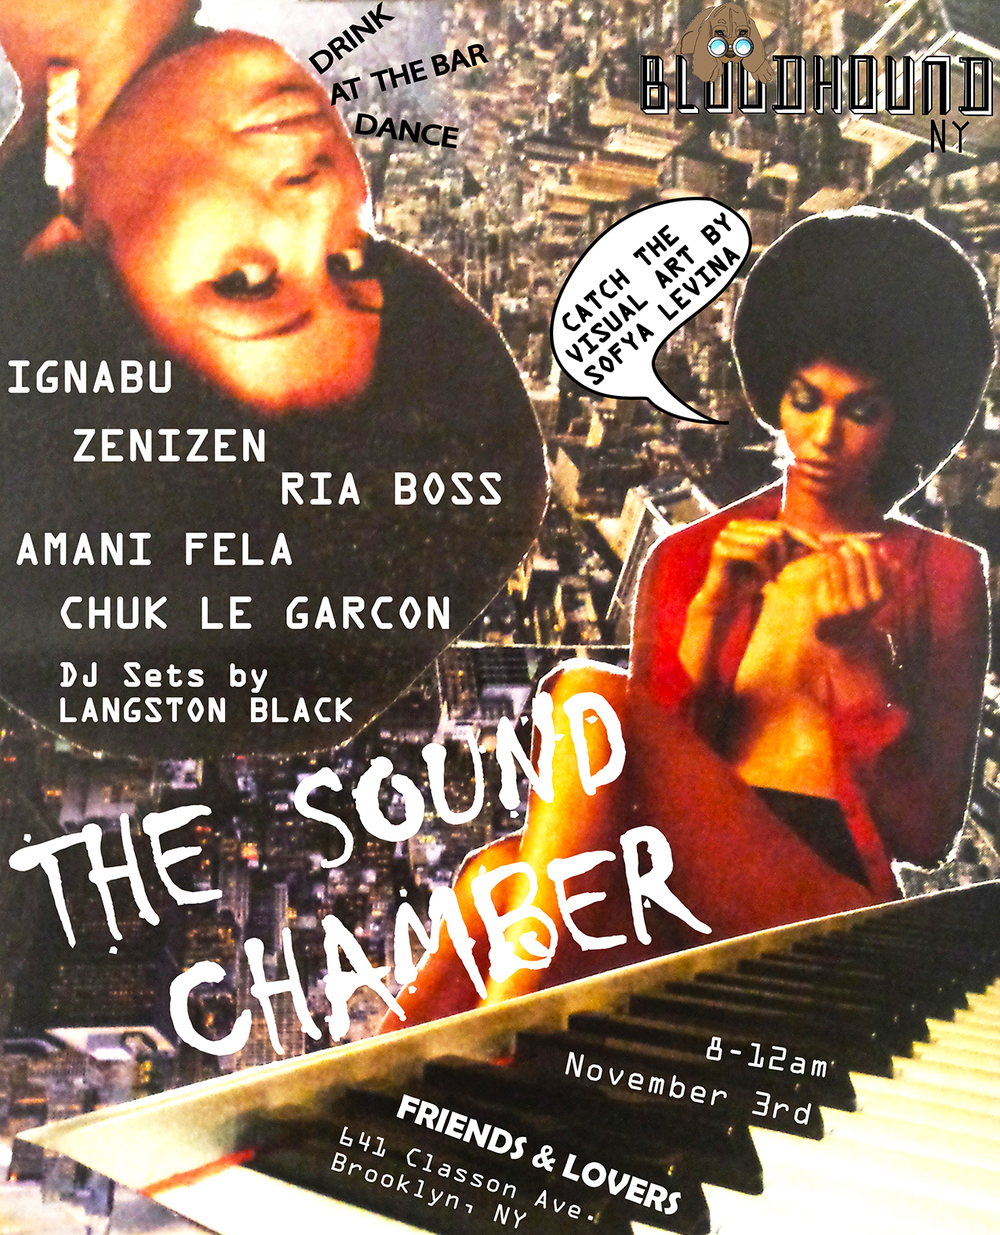 Bloodhound NY presents The Sound Chamber series VI